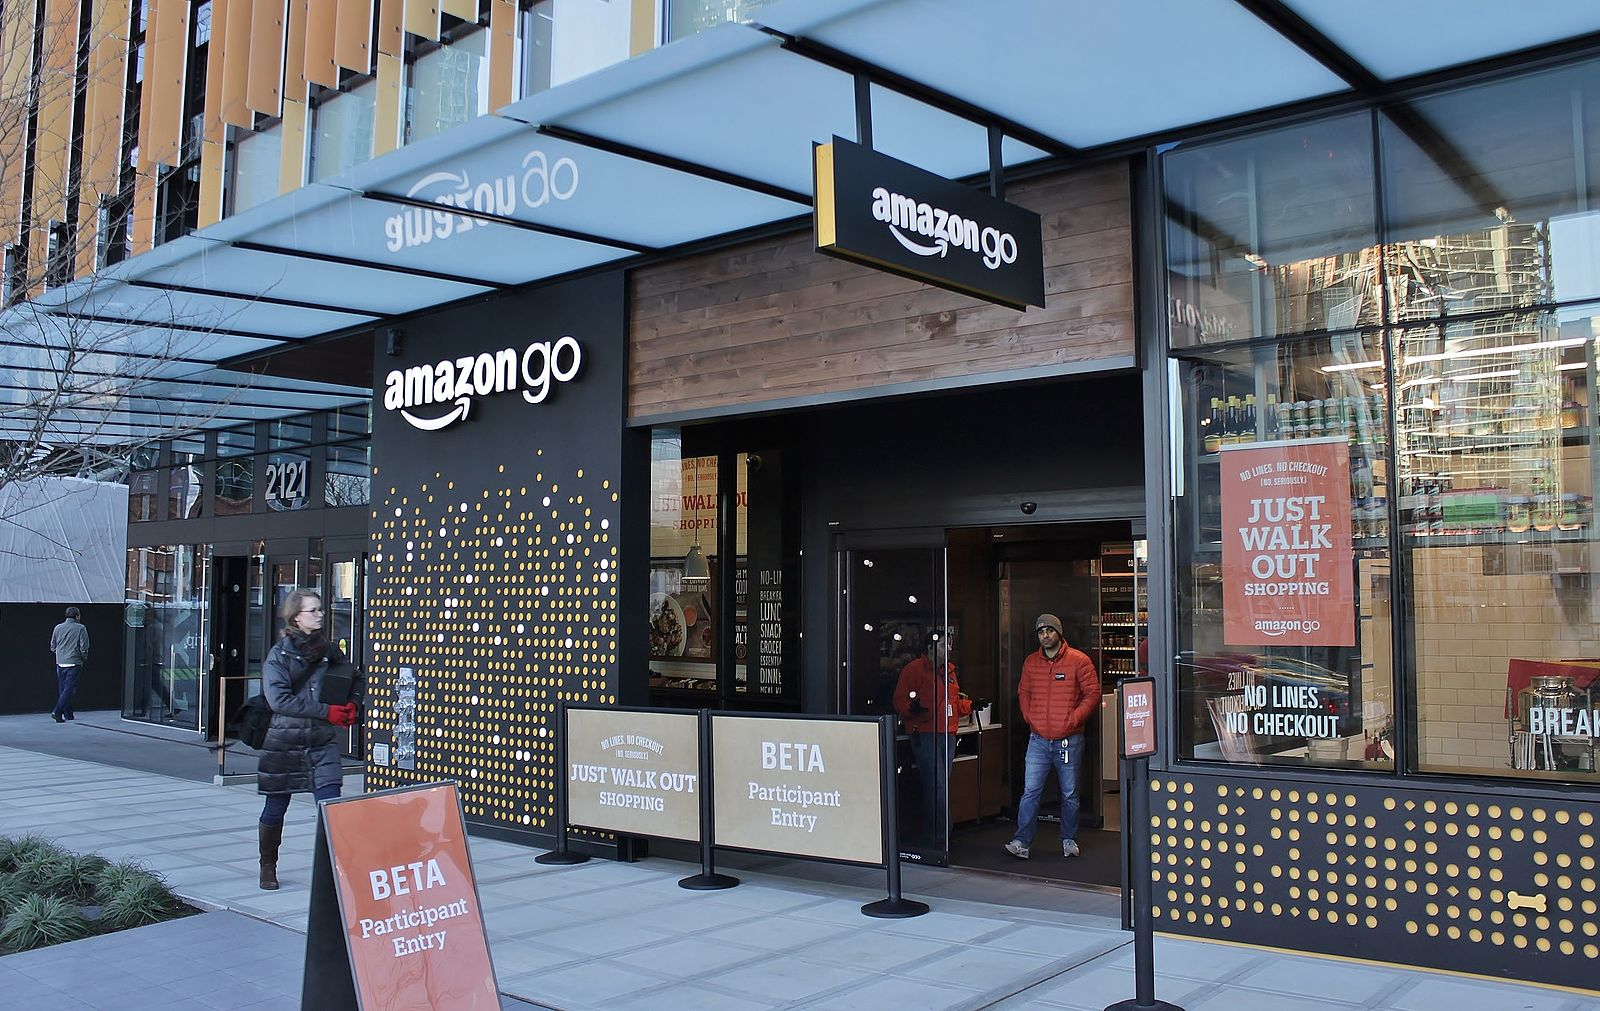 Difference Between Amazon Go and Competitors